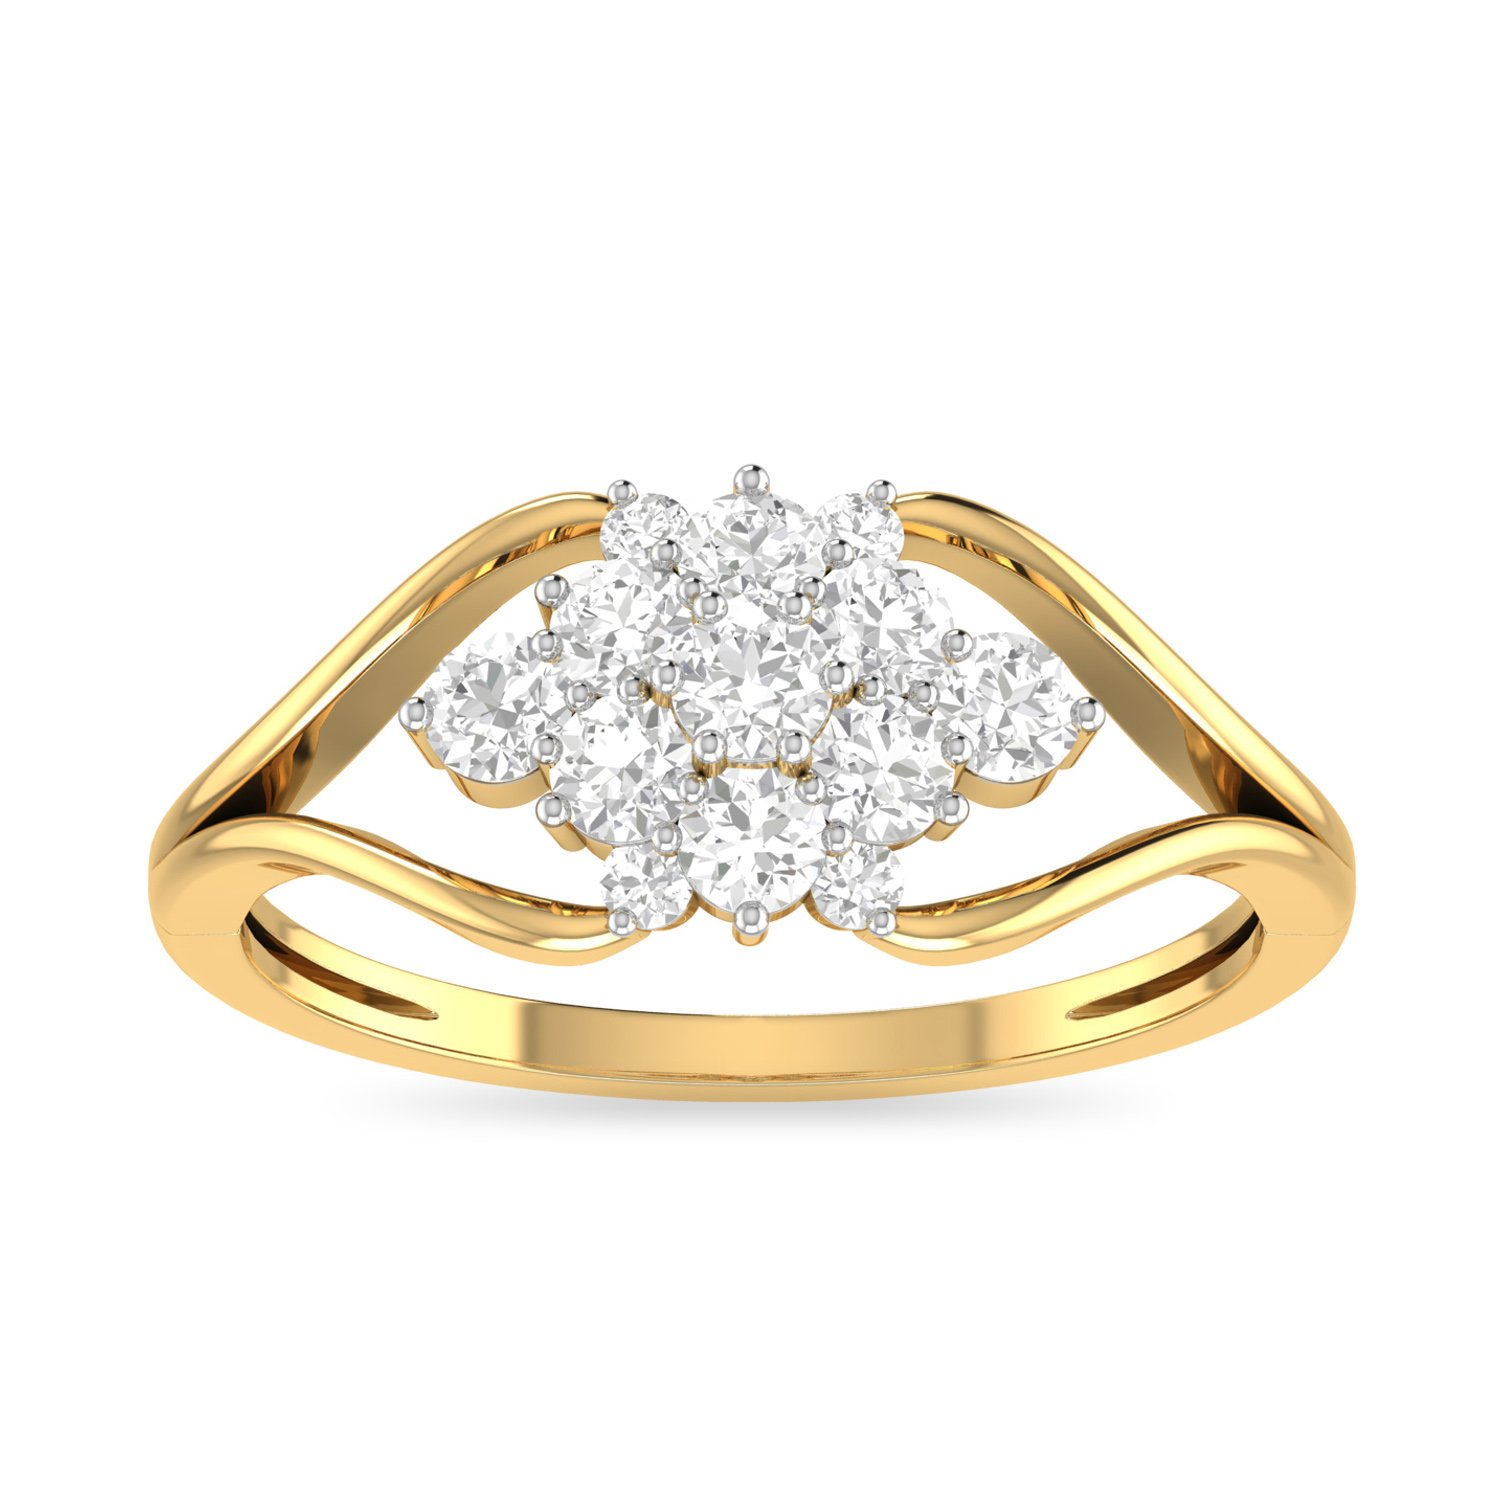 632c5efd73bc1 Buy PC Jeweller The Grania 18KT Yellow Gold & Diamond Rings Online ...